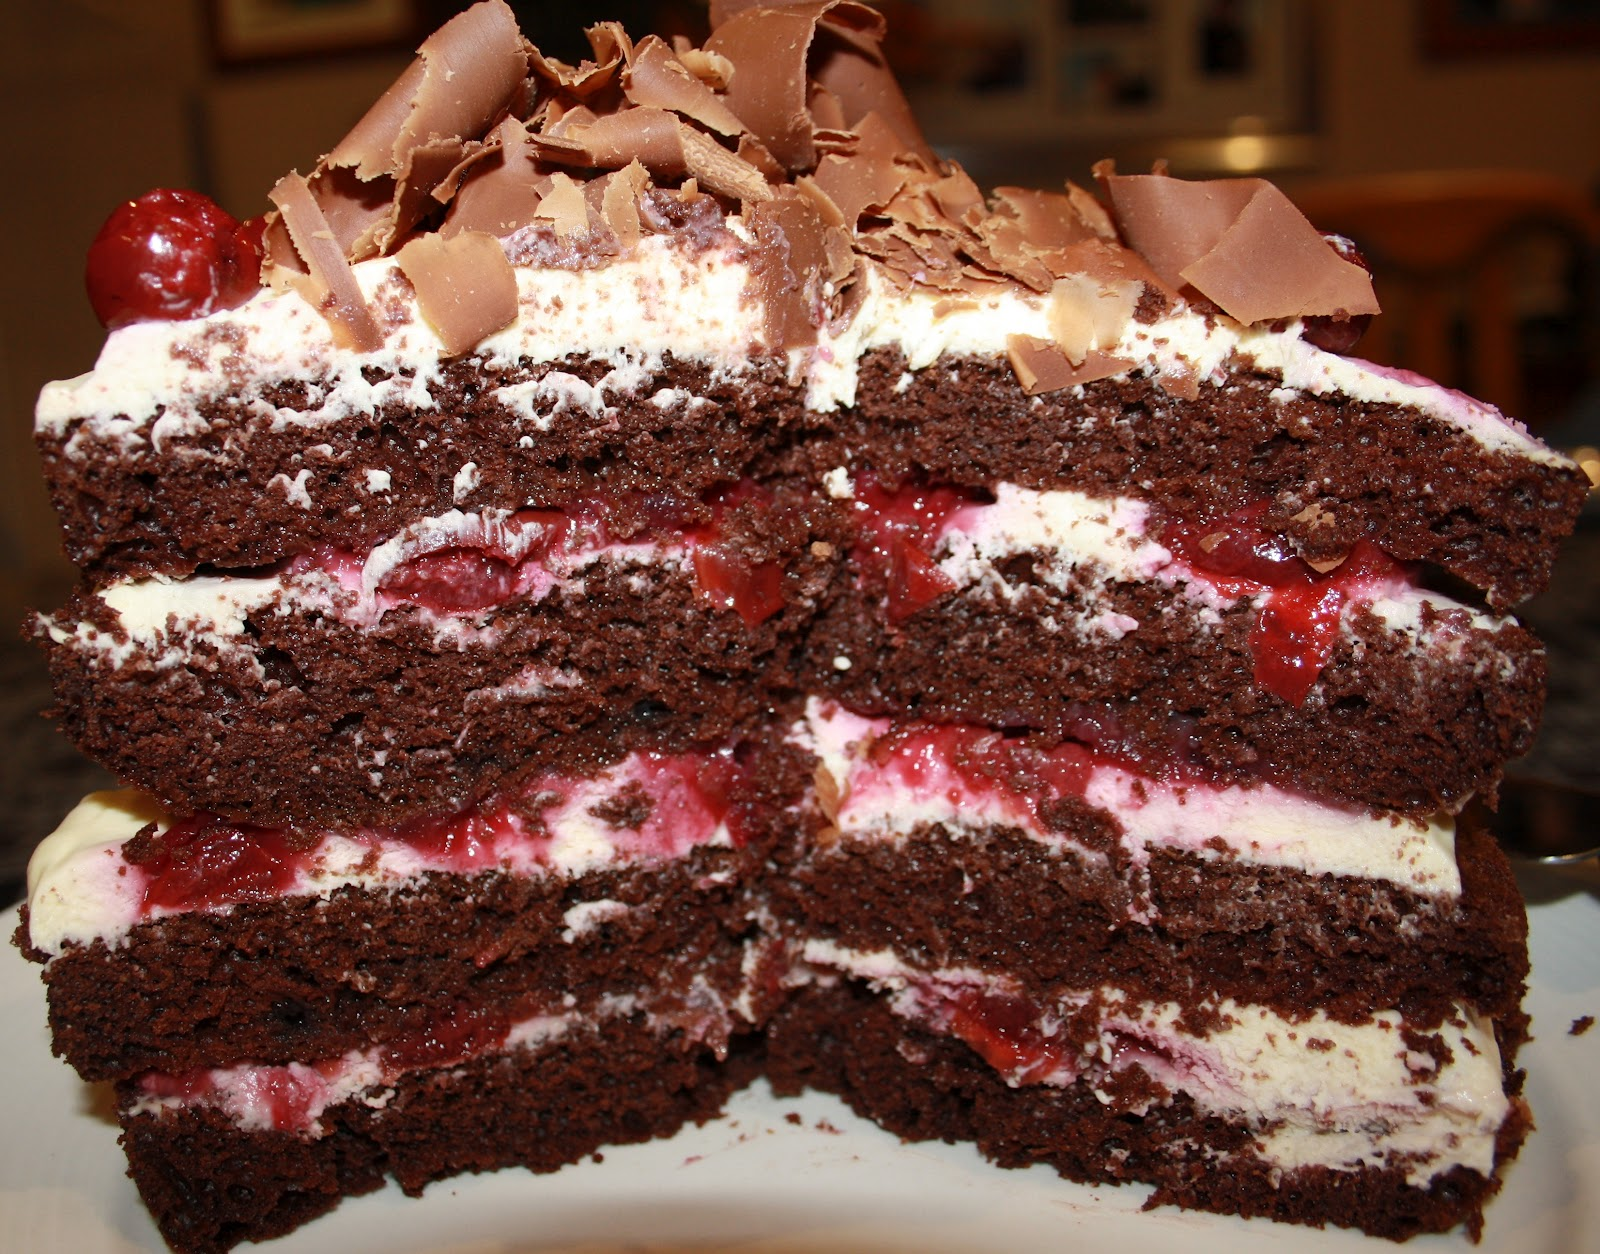 Black Forest Cake Big Images : Xx emazingly sweet xX: Recipe: Black Forest Chocolate ...